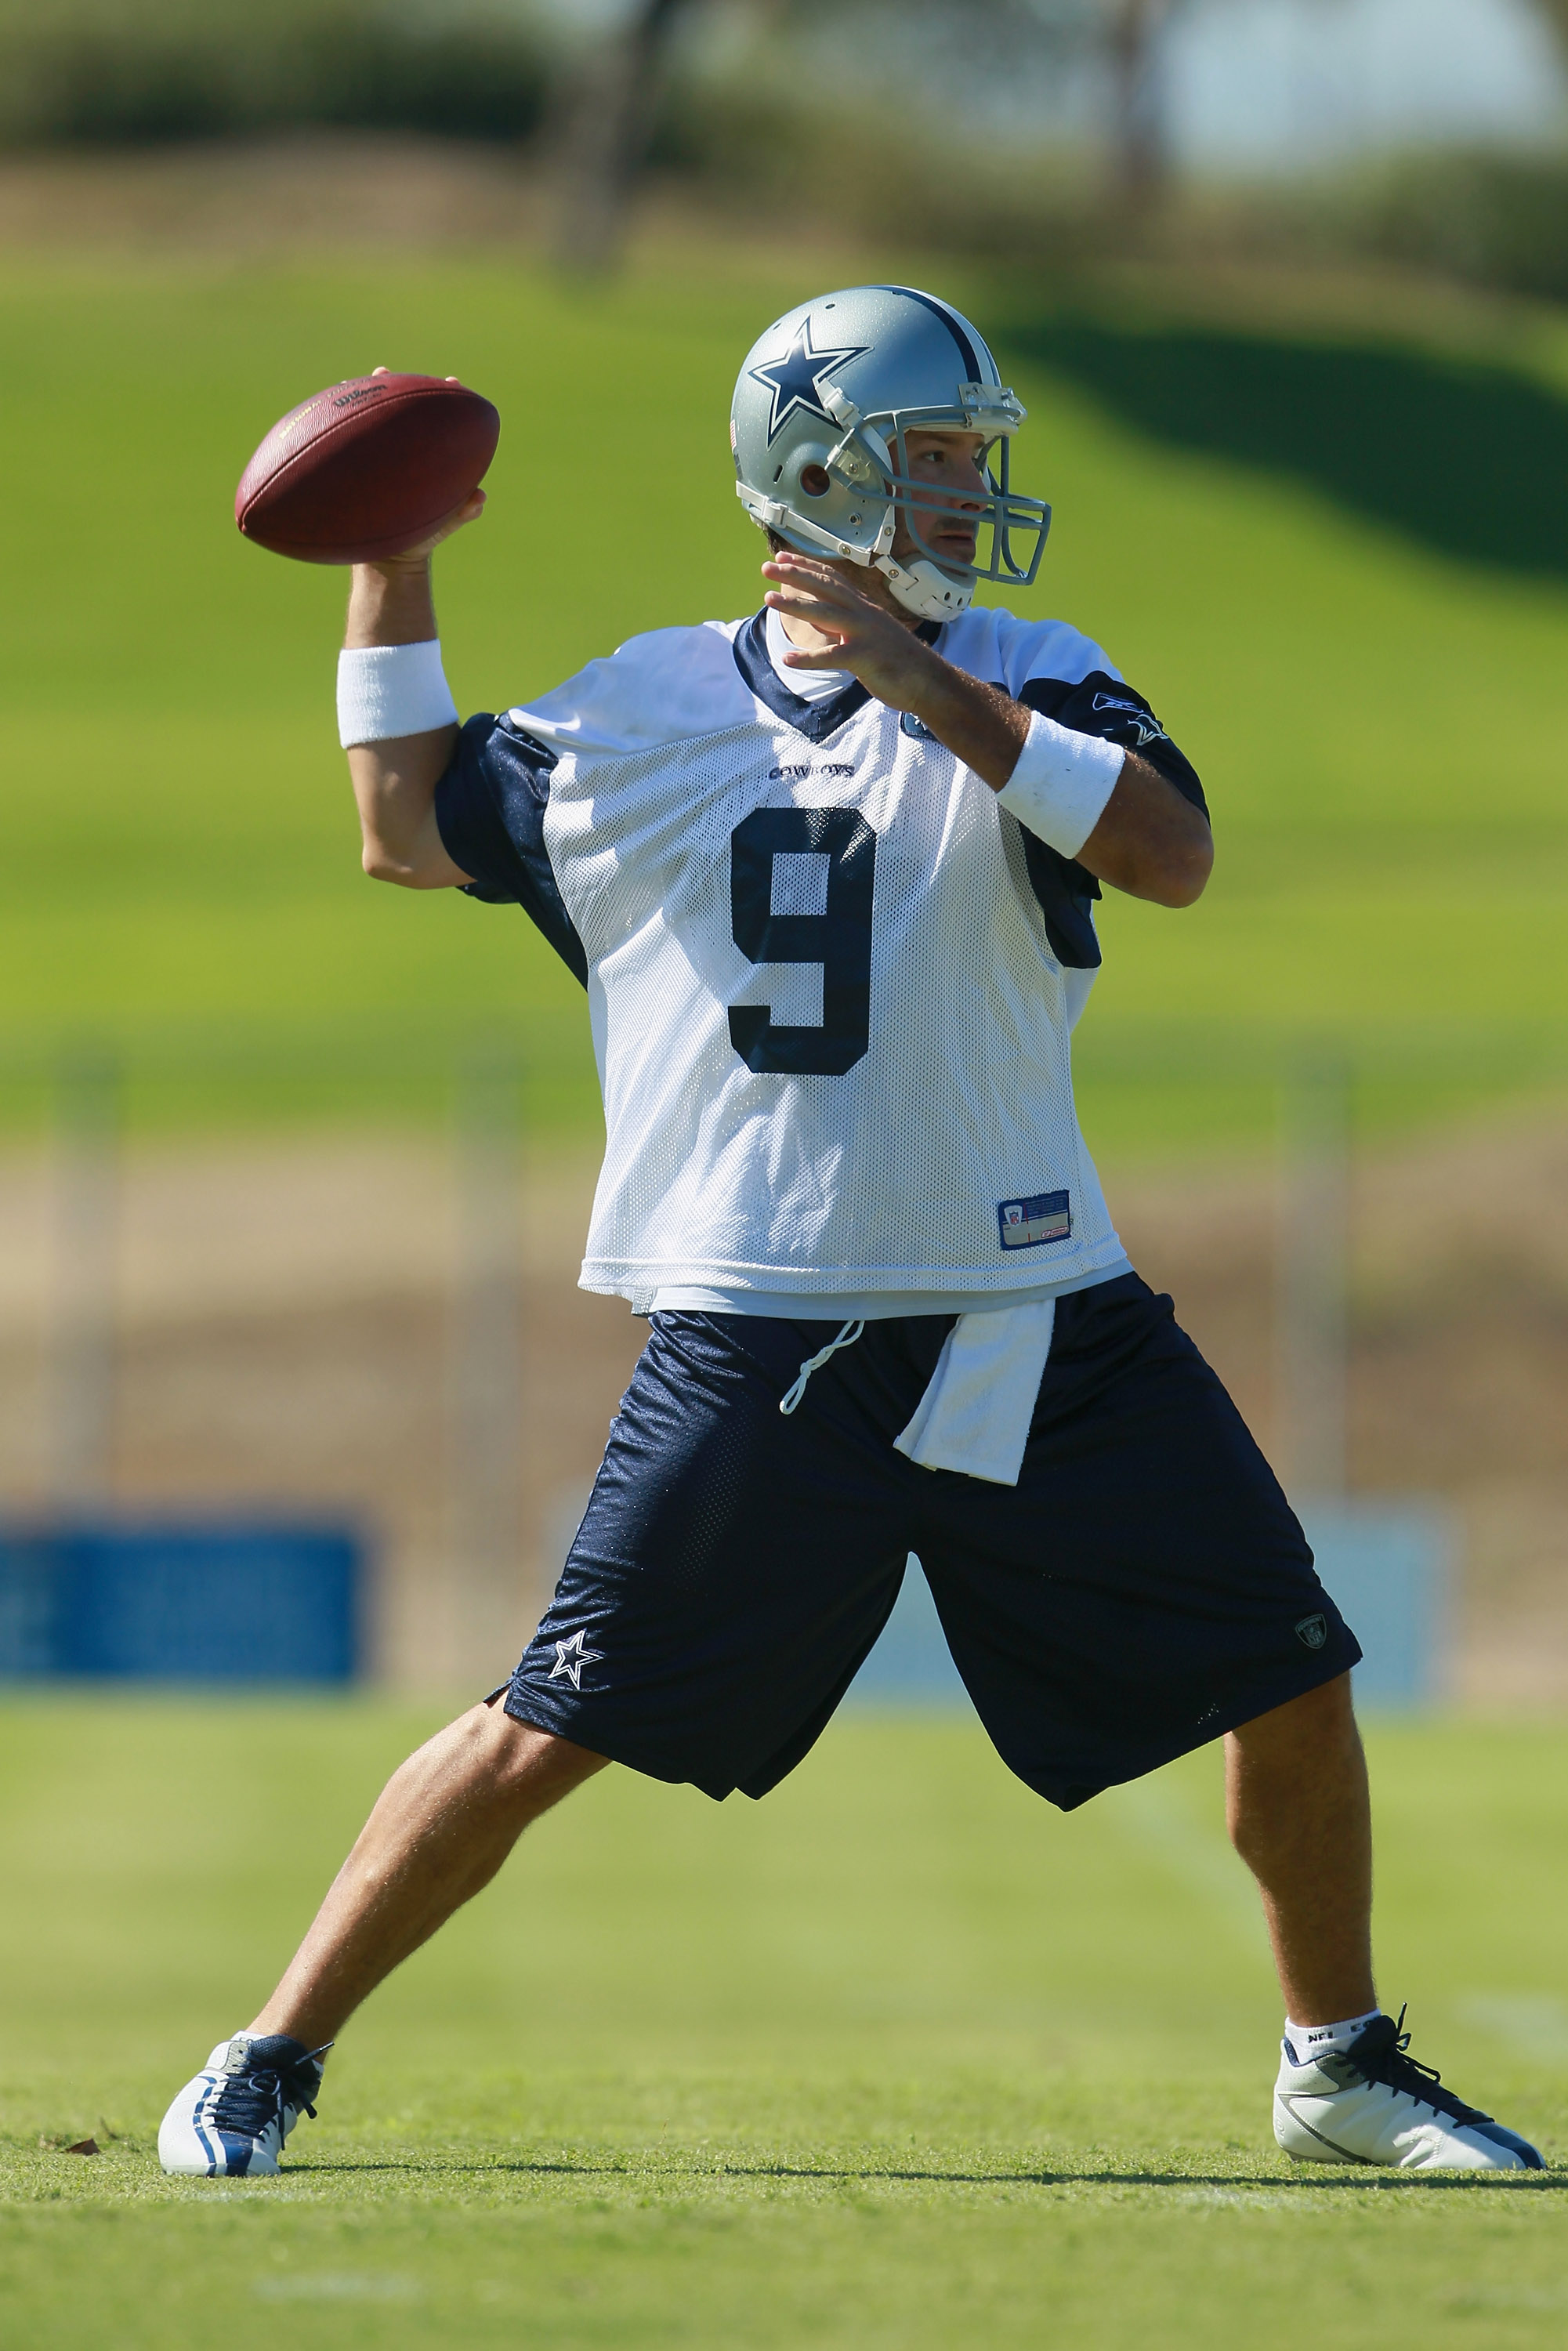 Romo is no Favre and will never be one